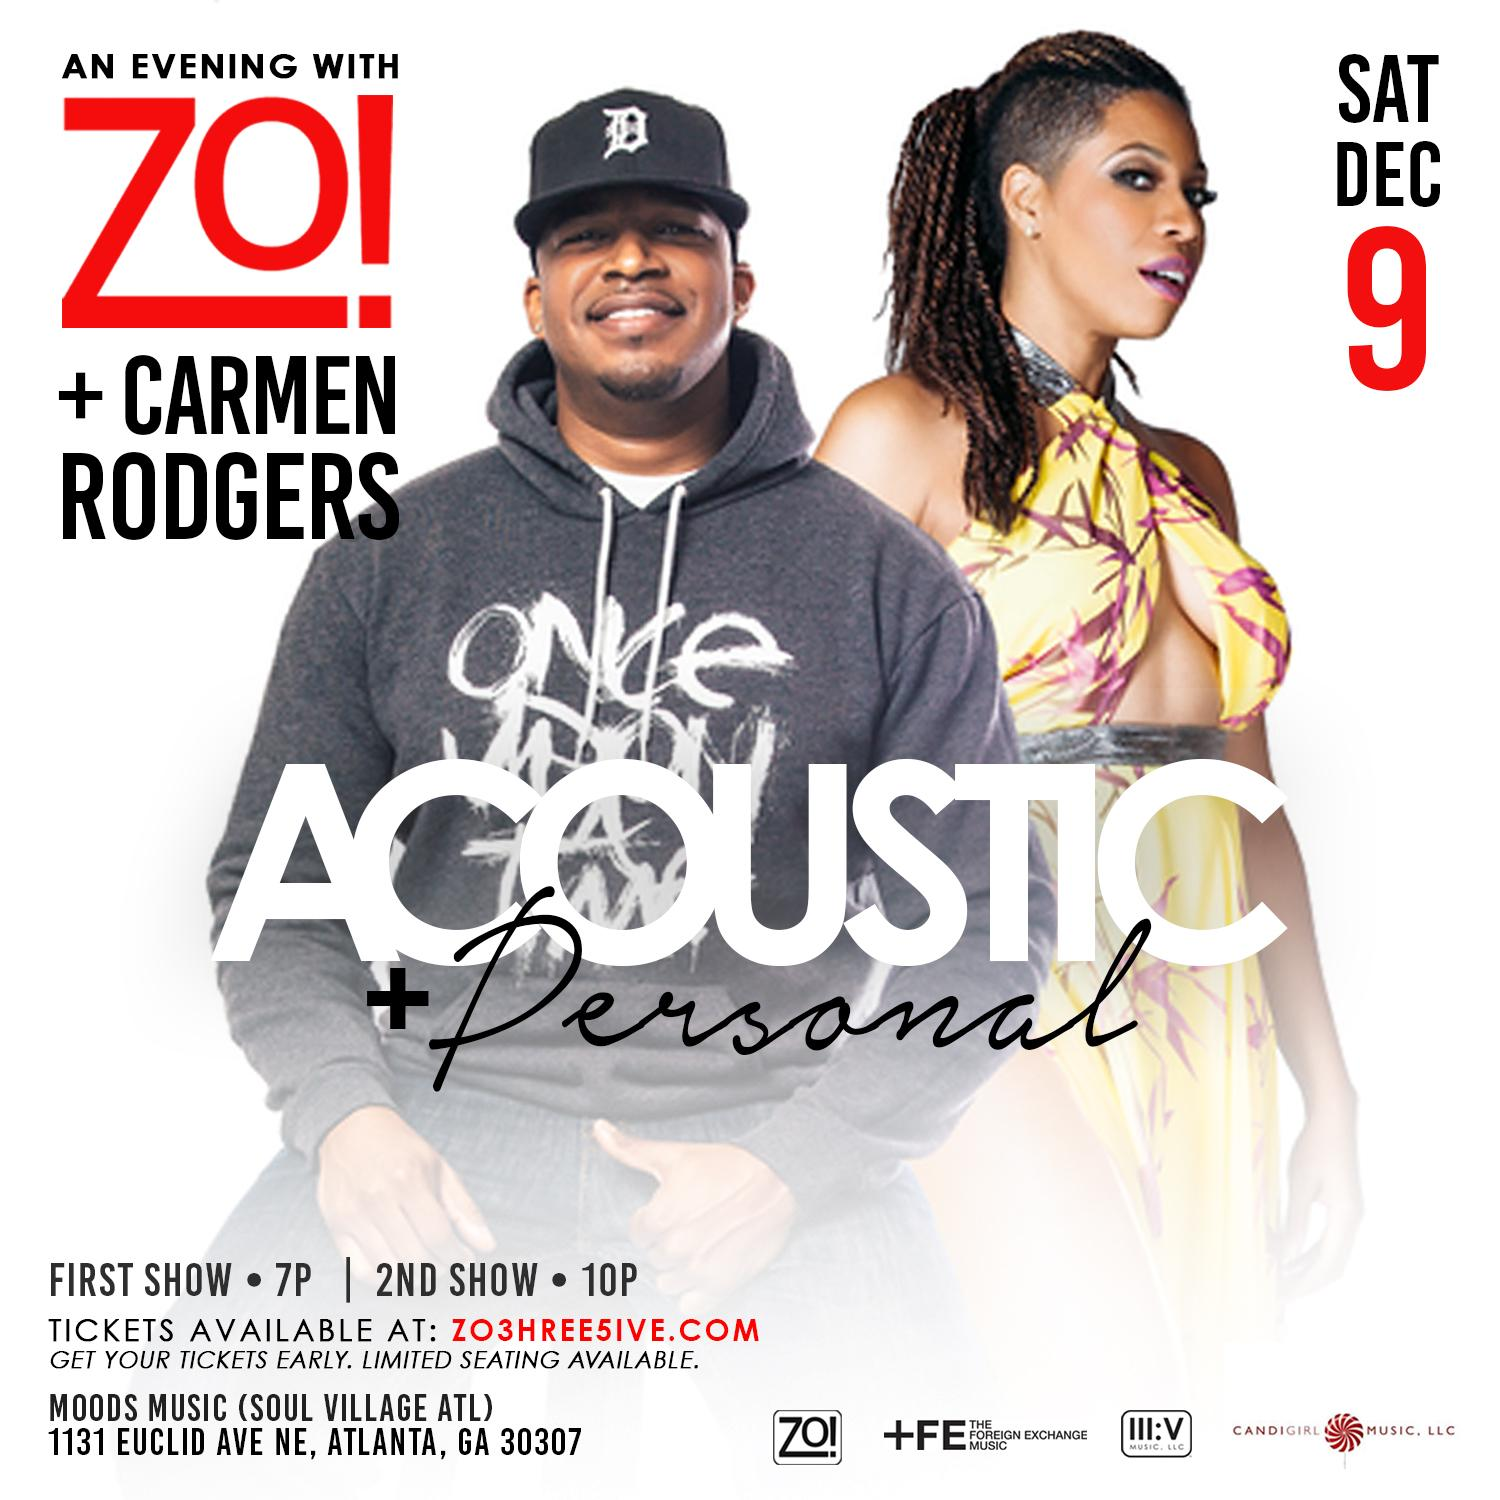 Acoustic and Personal: an Evening With Zo! and Carmen Rodgers (7:00p Show) (2017 Edition) | Atlanta, GA | Moods Music (Soul Village) | December 9, 2017